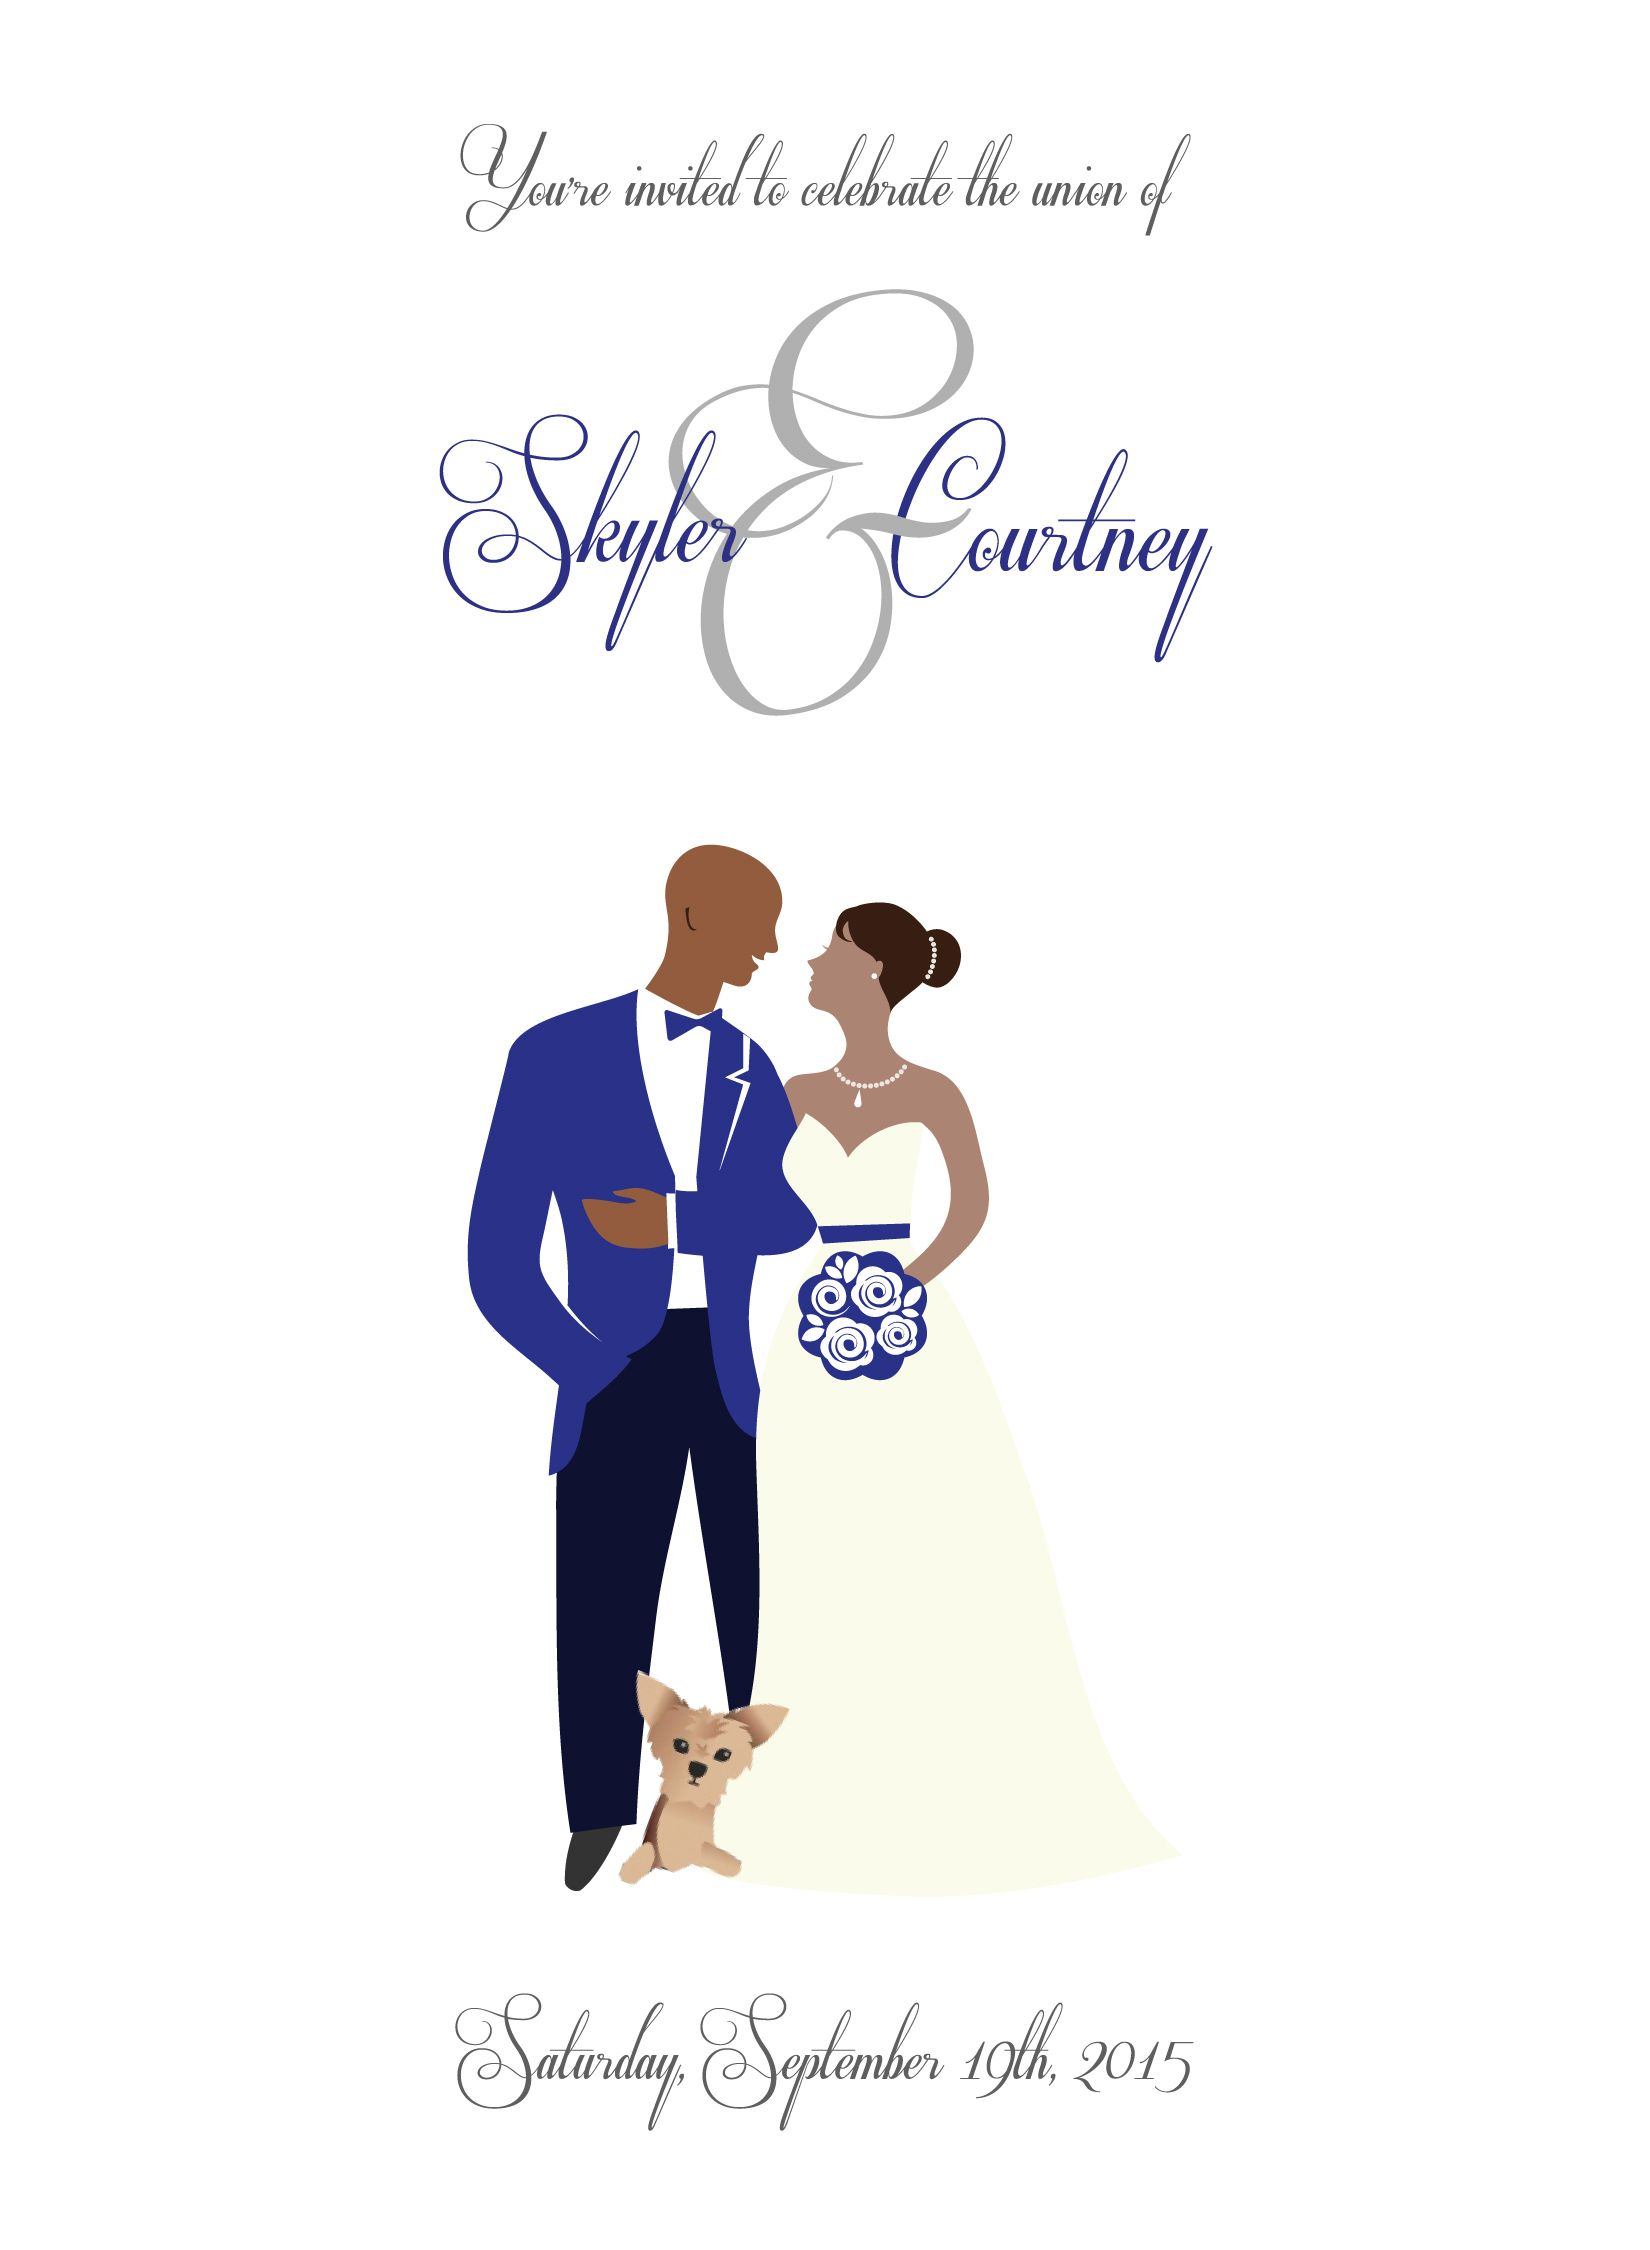 Our Modern And Fun Wedding Invitation That Includes Puppy Black Bride Groom African American Cartoon